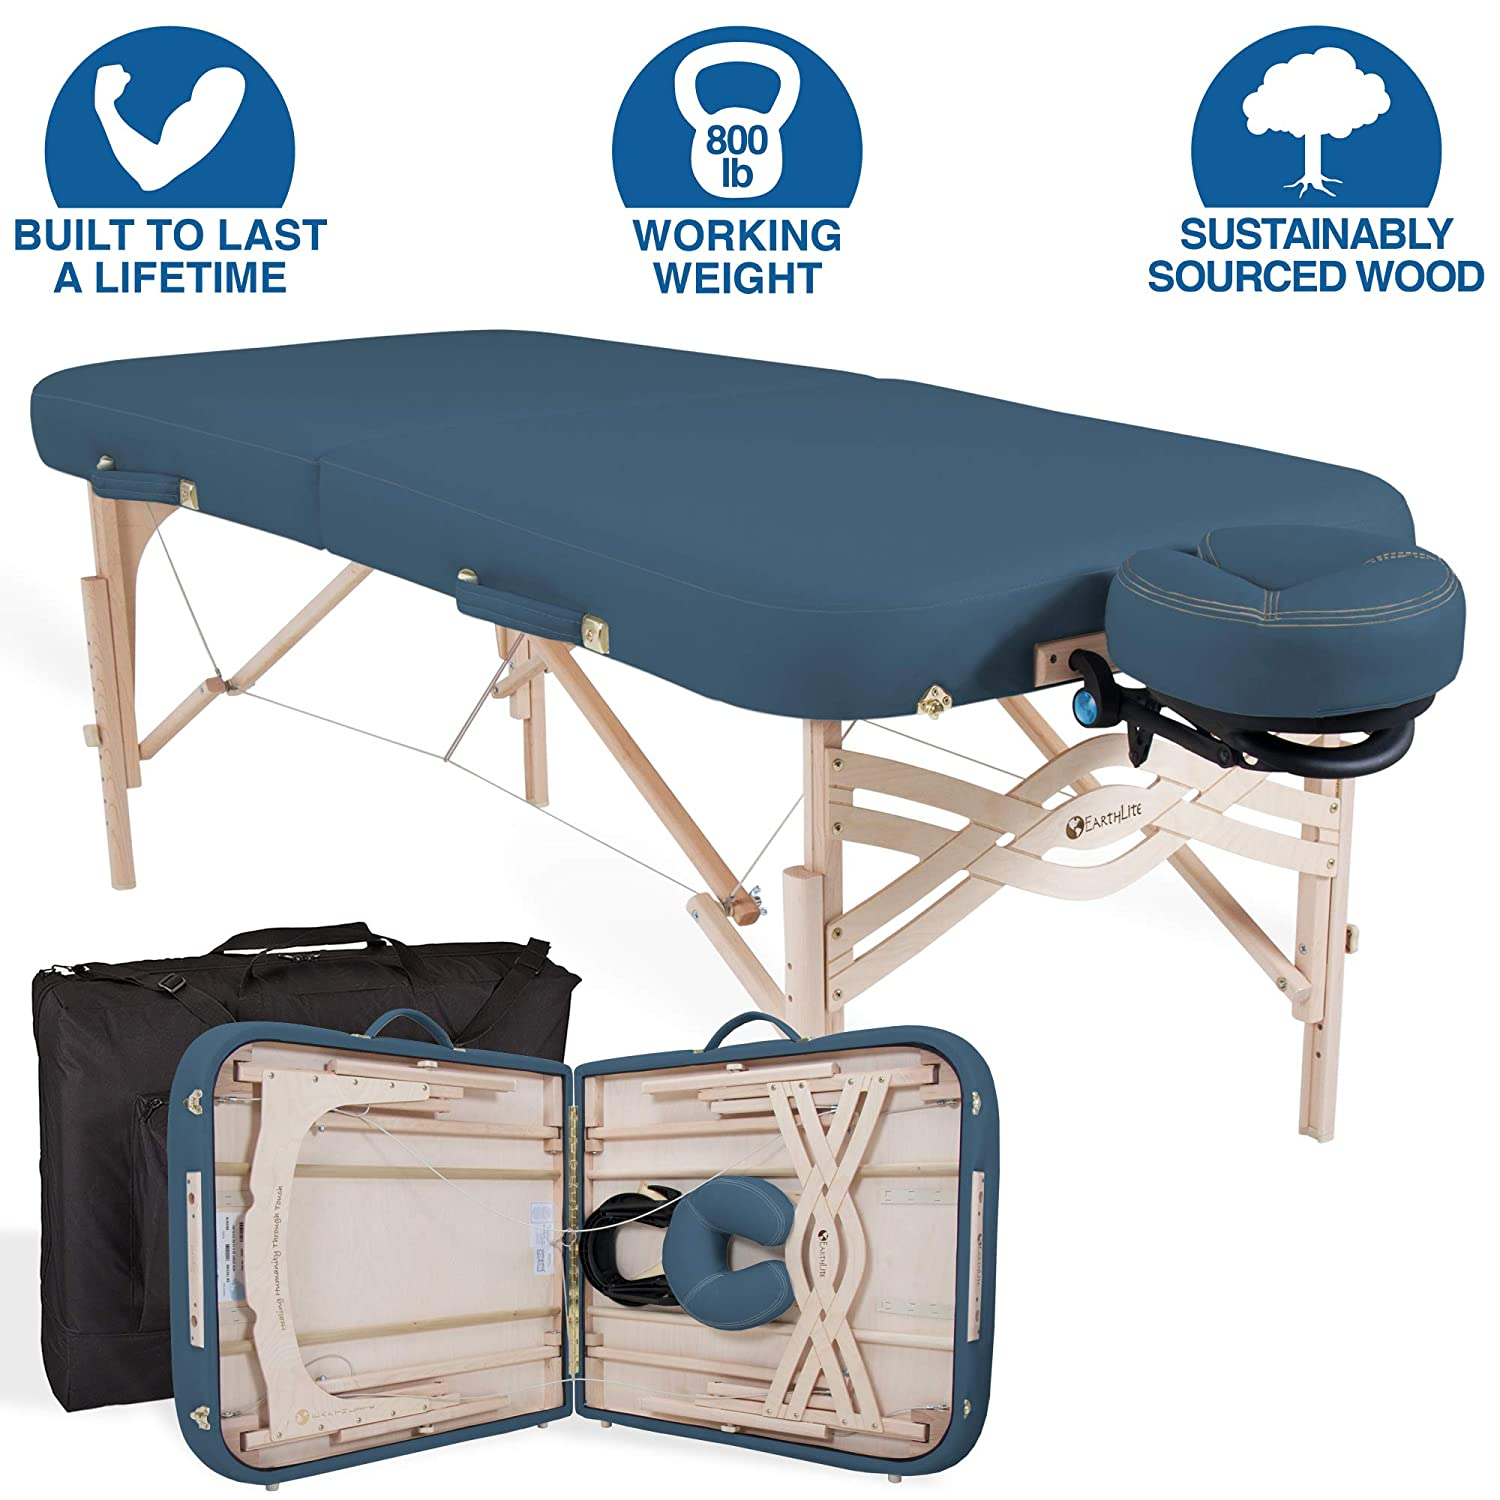 EARTHLITE Premium Portable Massage Table Package SPIRIT – Spa-Level Comfort, Deluxe Cushioning incl. Flex-Rest Face Cradle Strata Face Pillow, Carry Case 30 32 x 73 – Made in USA